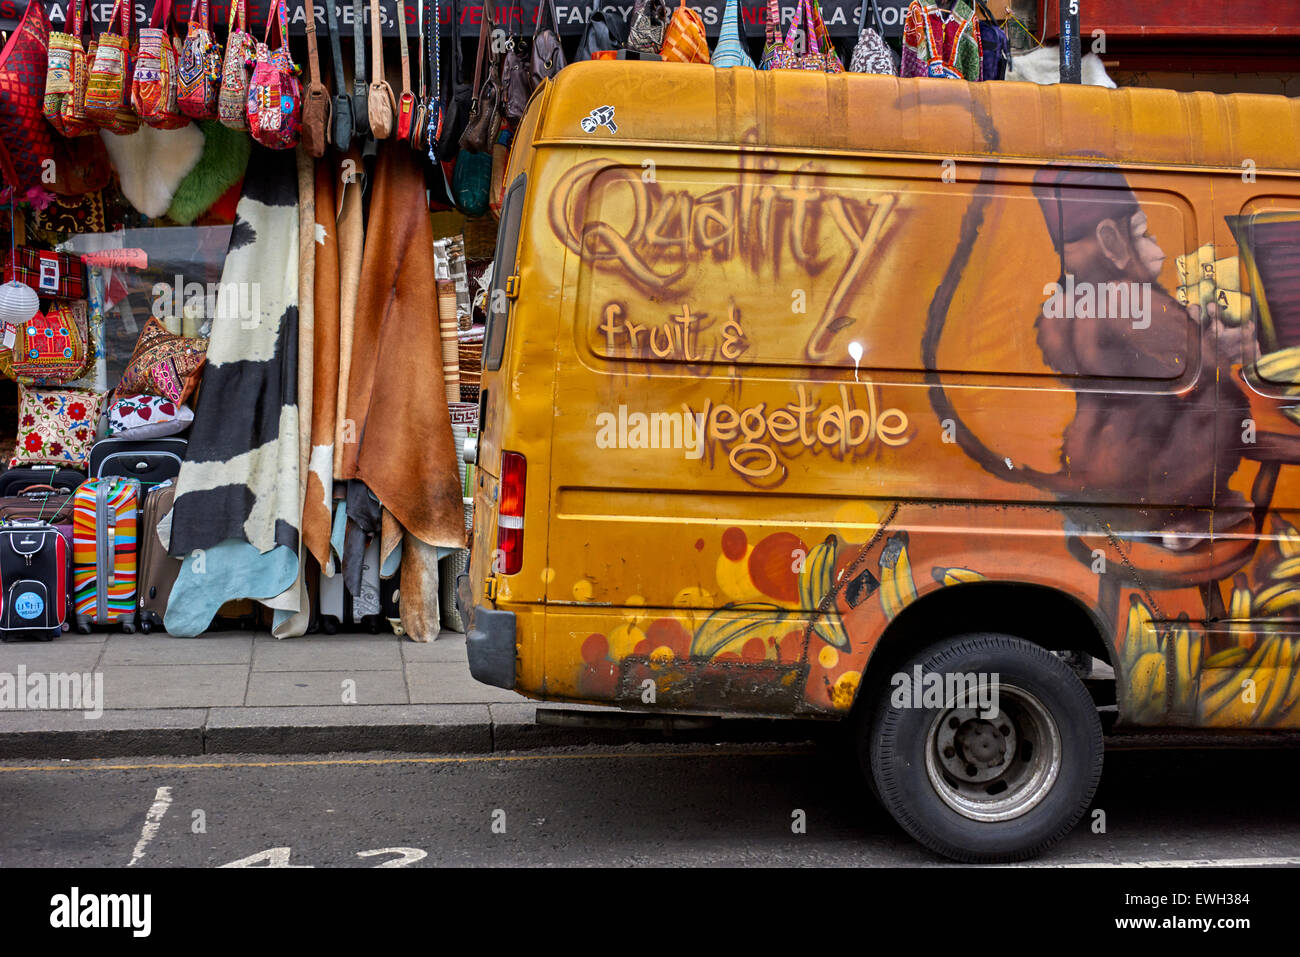 Portobello Road in the Notting Hill district of the Royal Borough of Kensington and Chelsea in west London Stock Photo